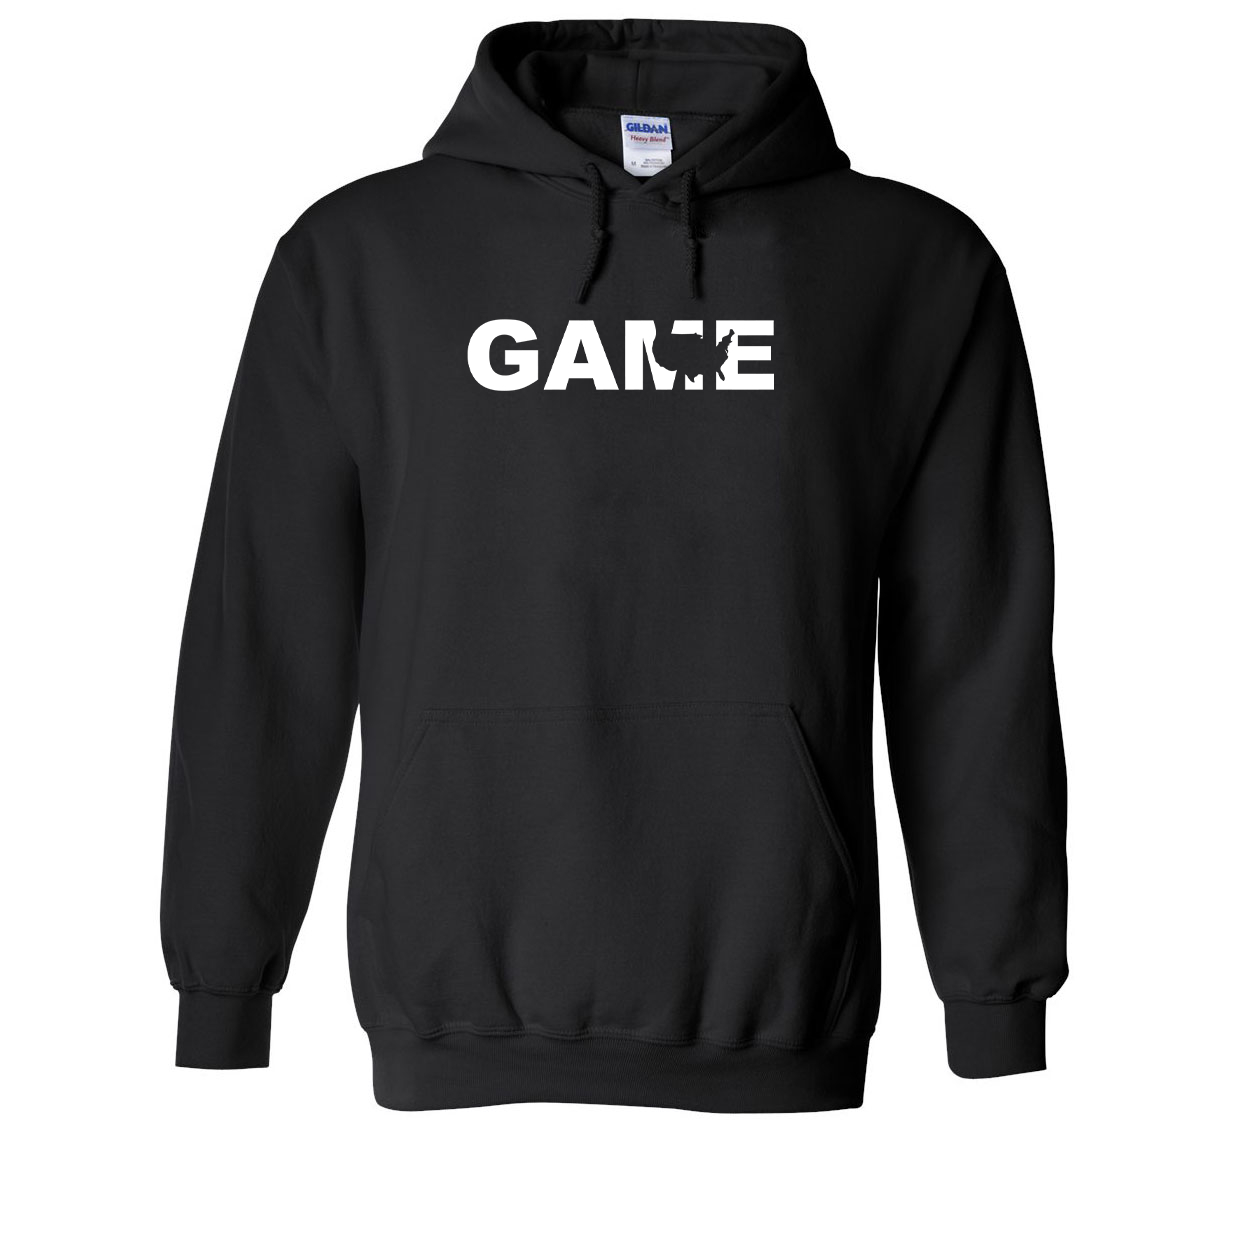 Game United States Classic Sweatshirt Black (White Logo)